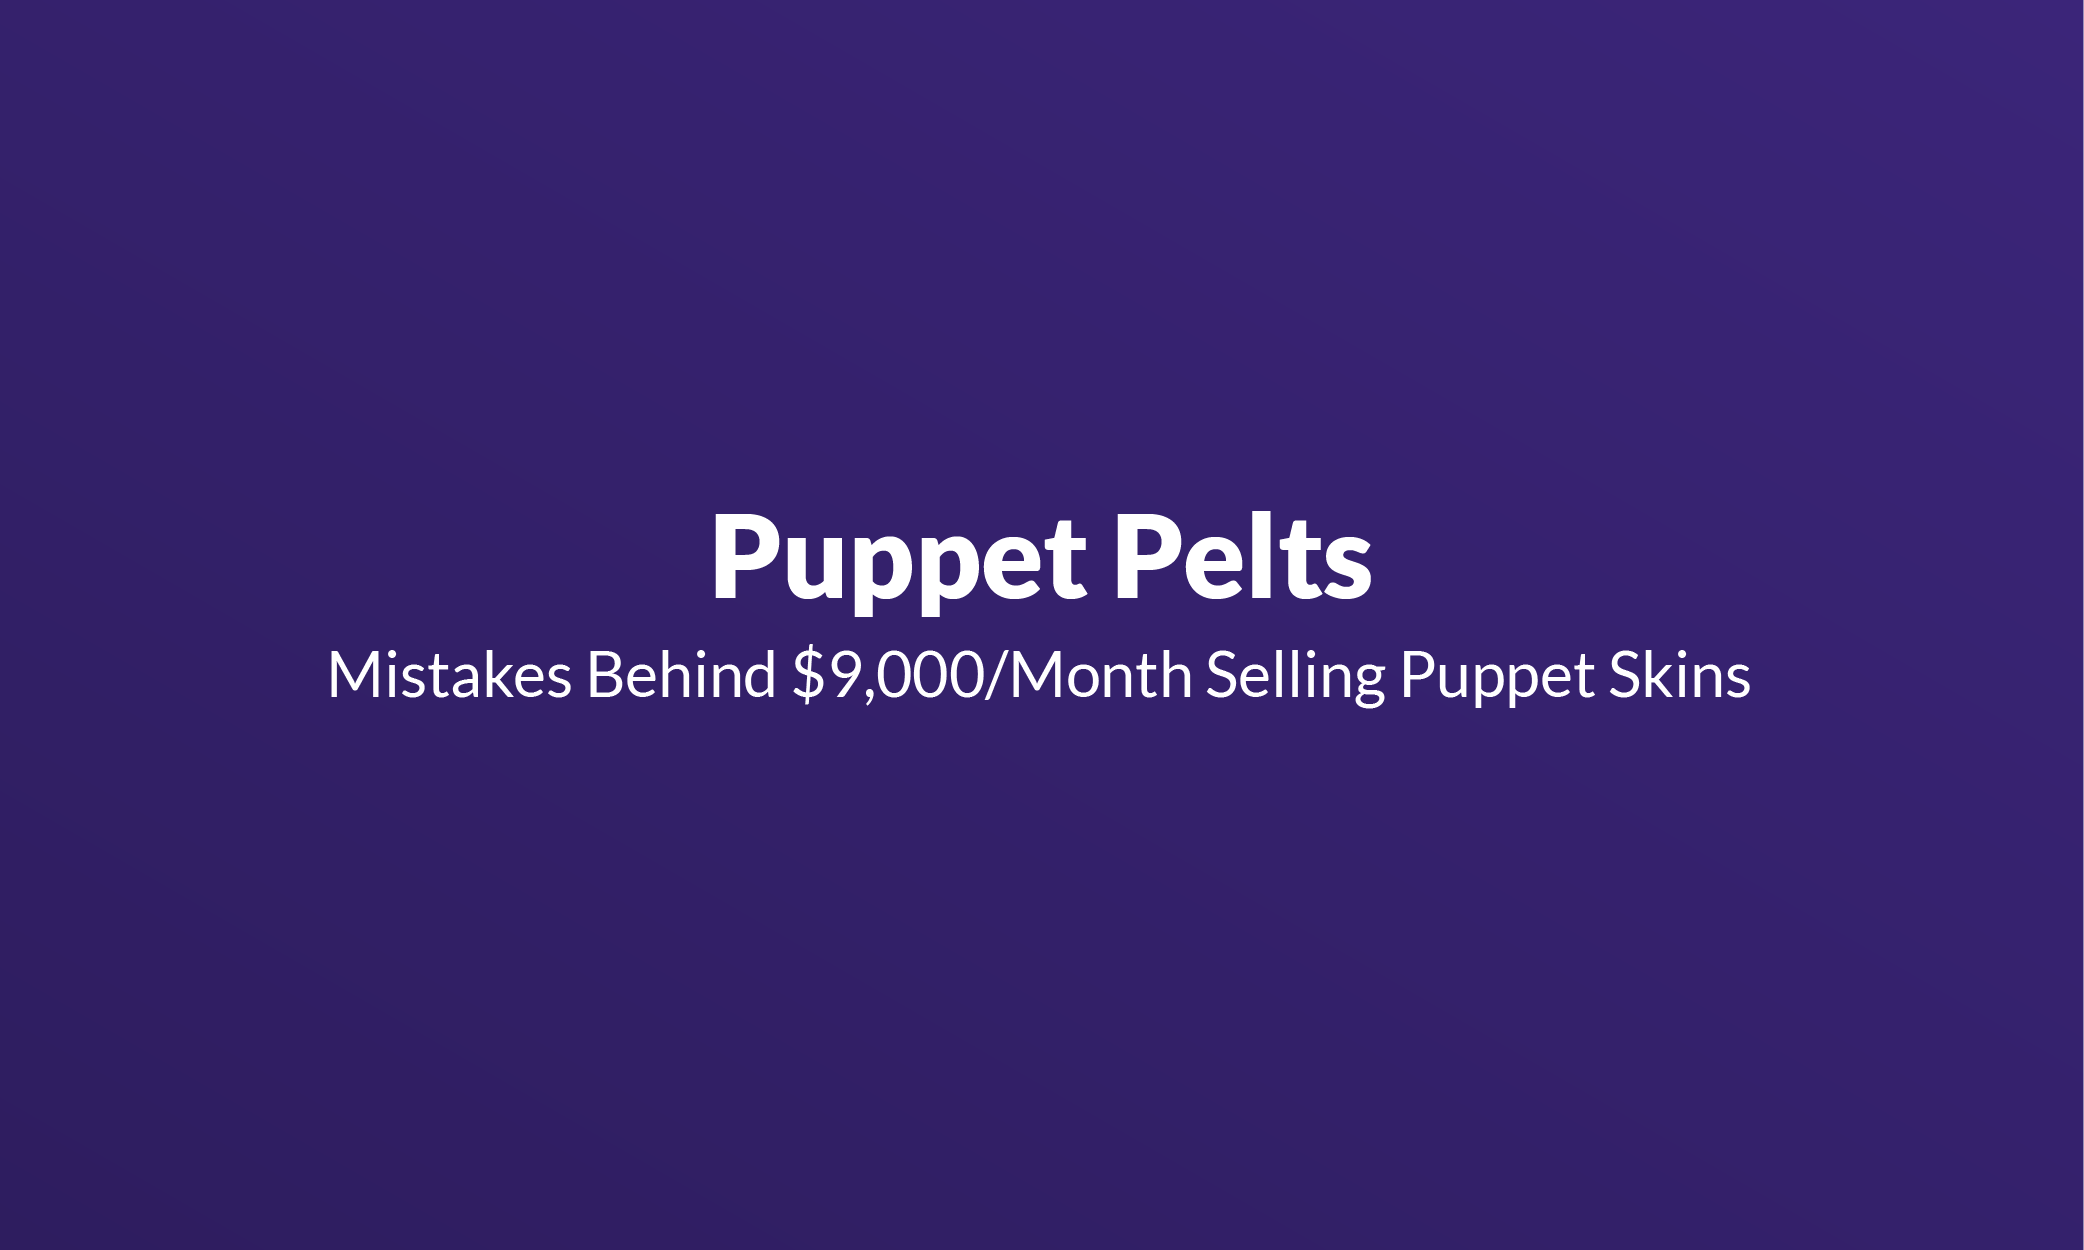 Puppet Pelts: Mistakes Behind $9,000/Month Selling Puppet Skins